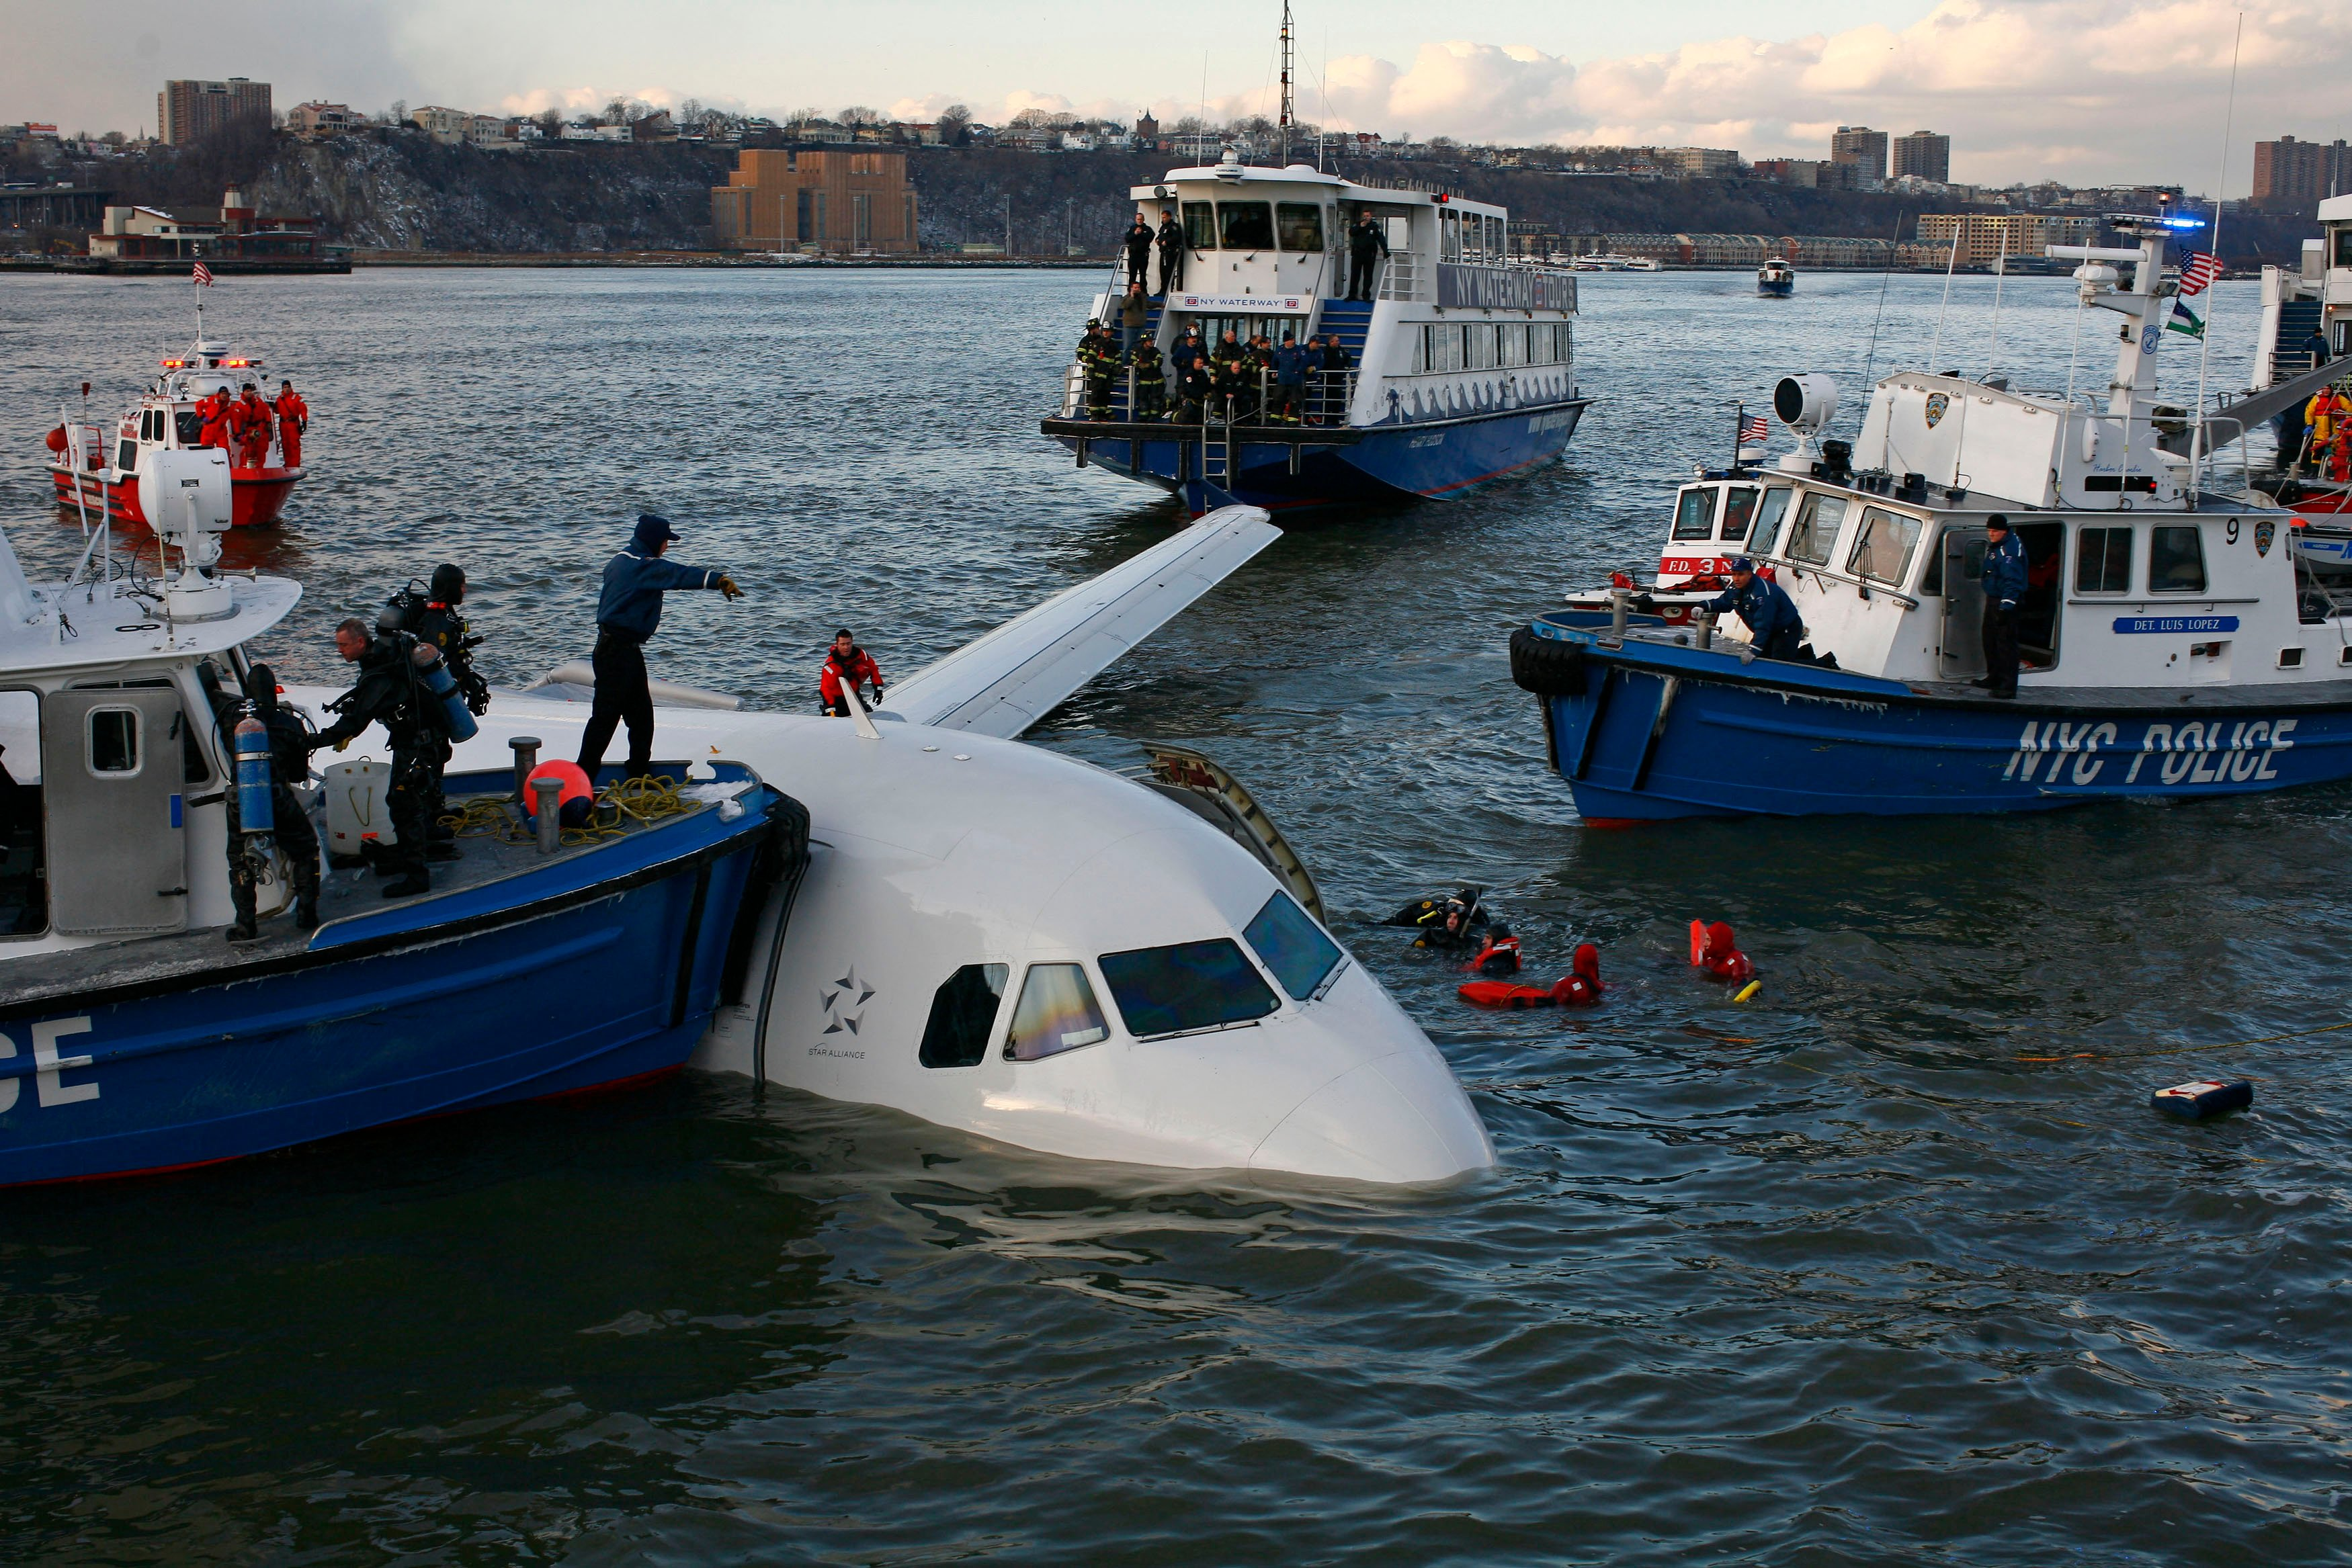 Emergency personnel search for passengers after a U.S. Airways plane landed in the Hudson River in New York, January 15, 2009. REUTERS/Eric Thayer